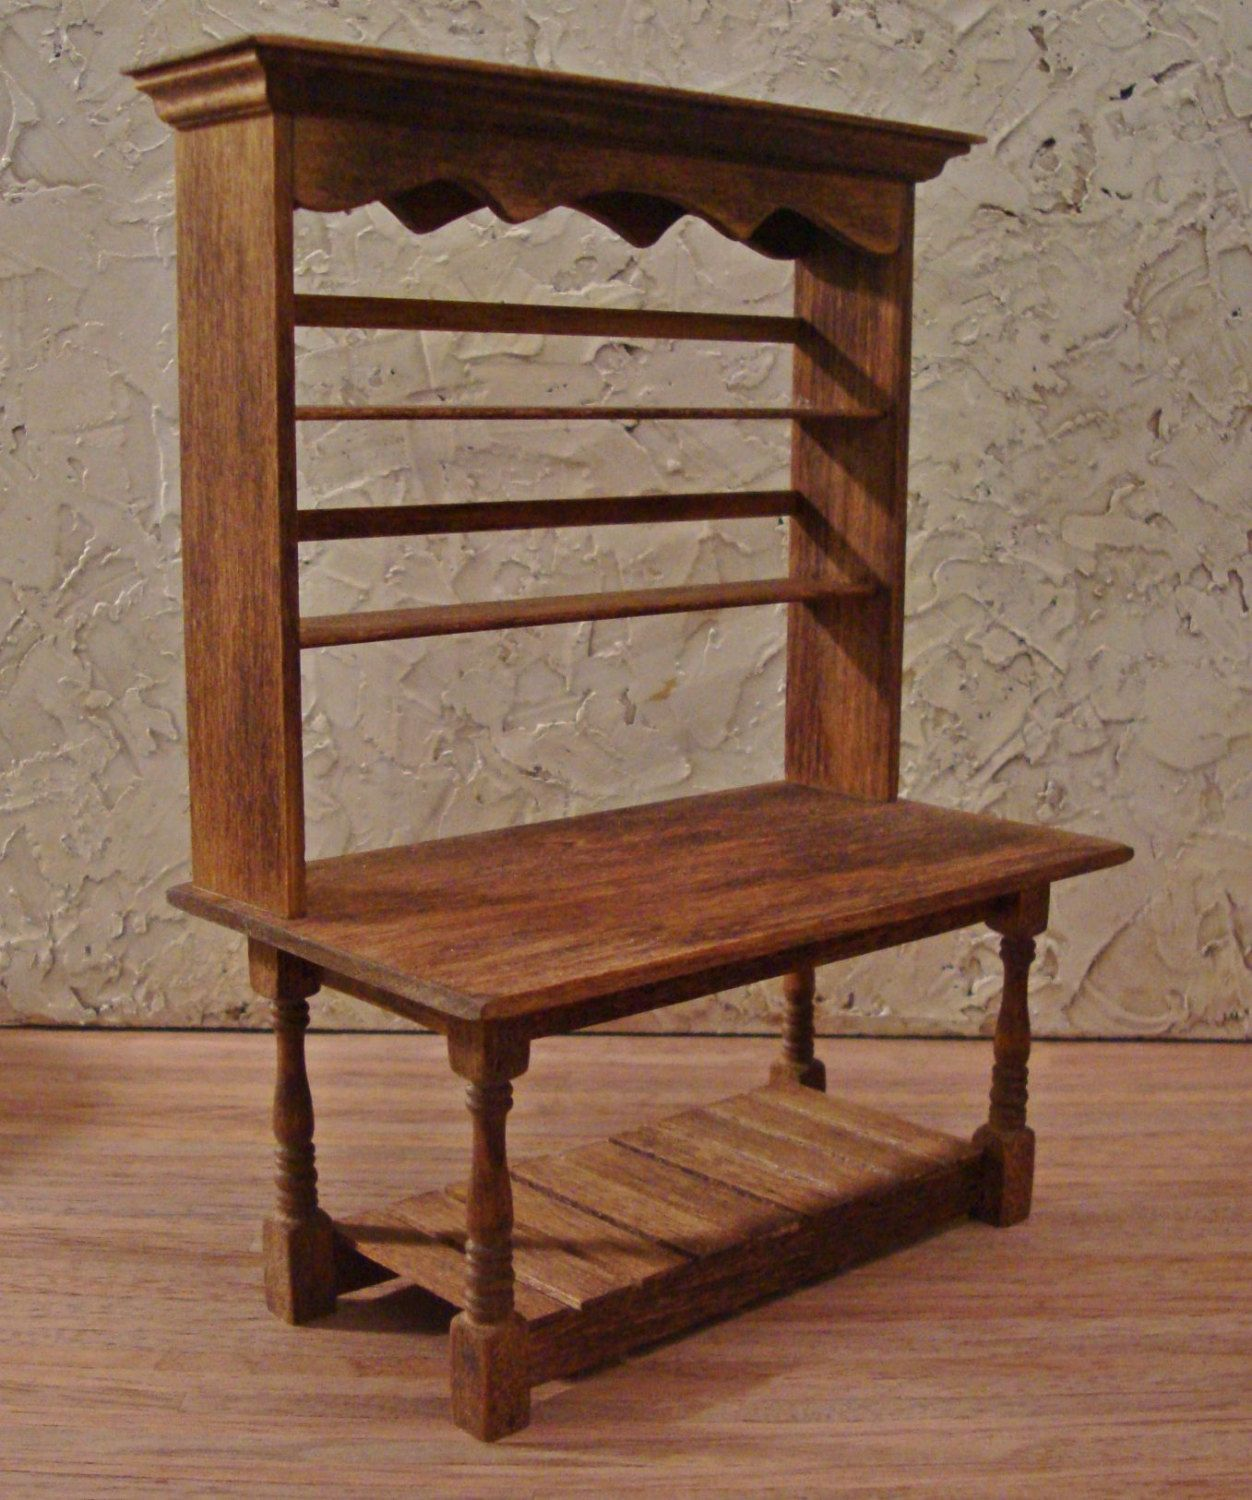 Rustic Kitchen Work Table 1 Inch Scale Miniature Dollhouse